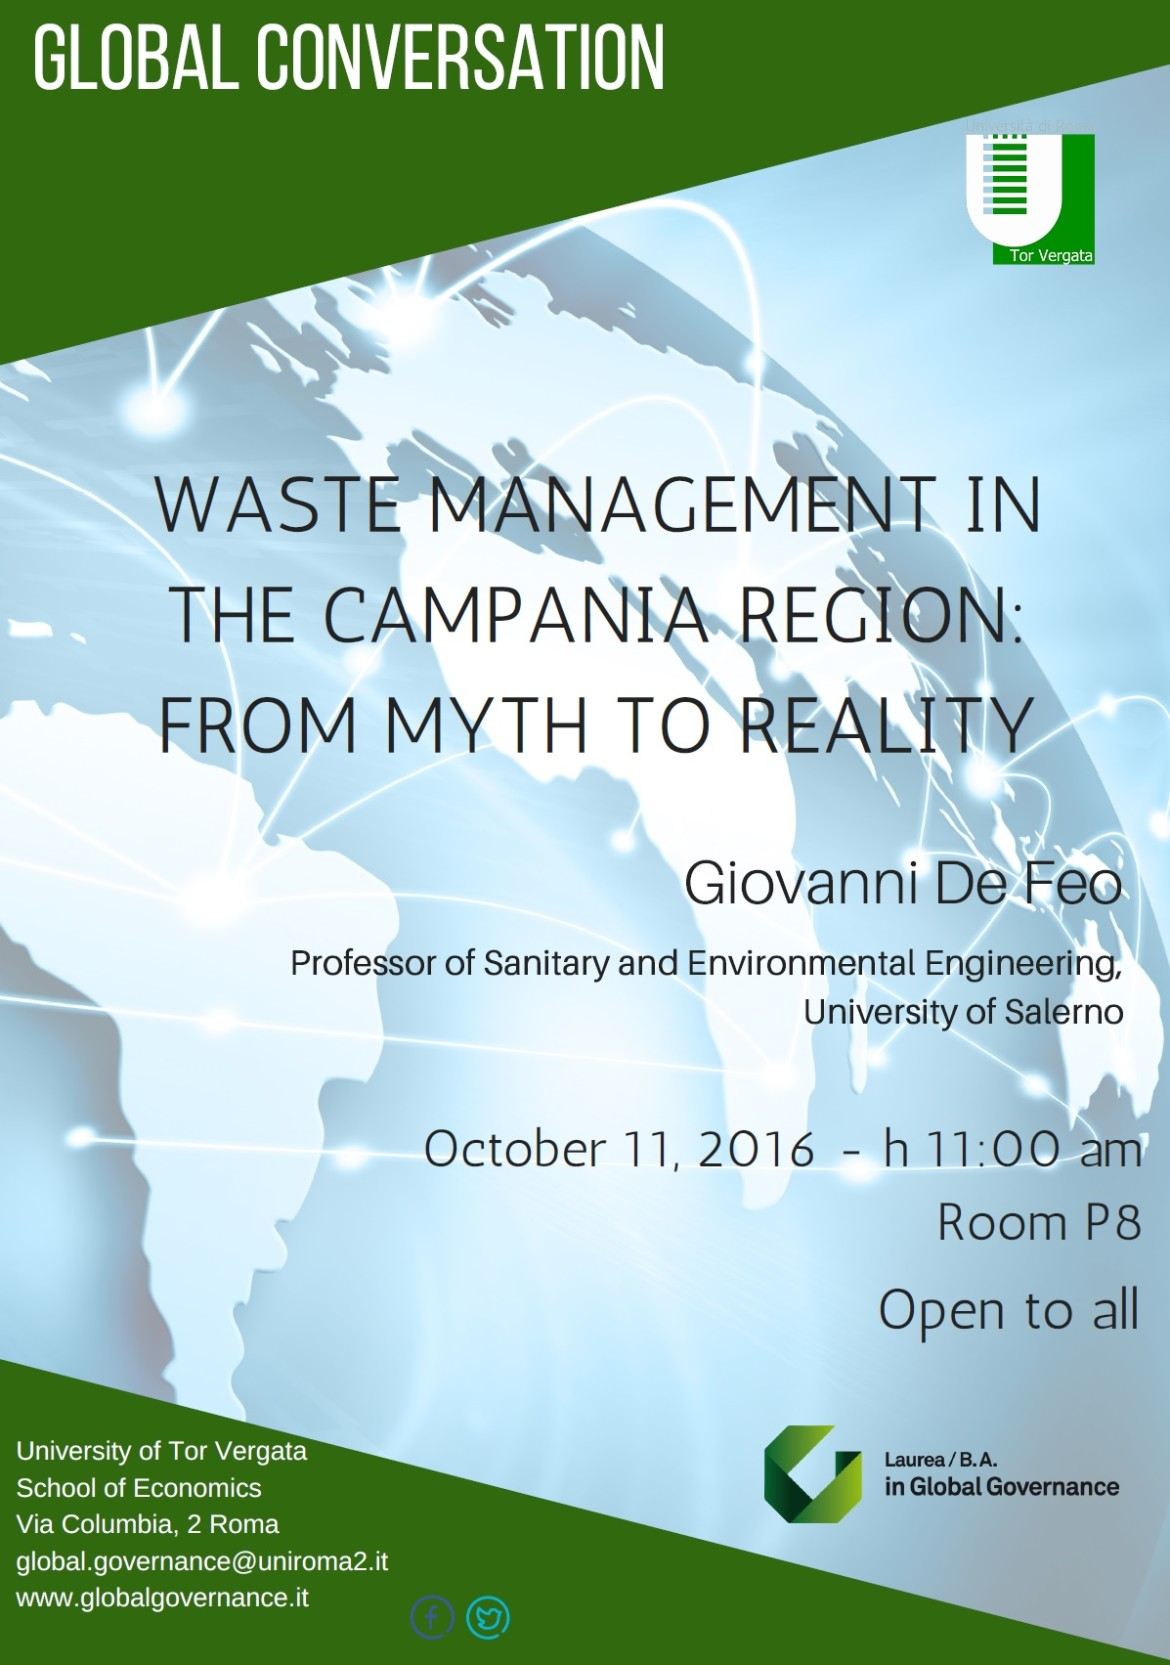 WASTE MANAGEMENT IN THE CAMPANIA REGION: FROM MYTH TO REALITY